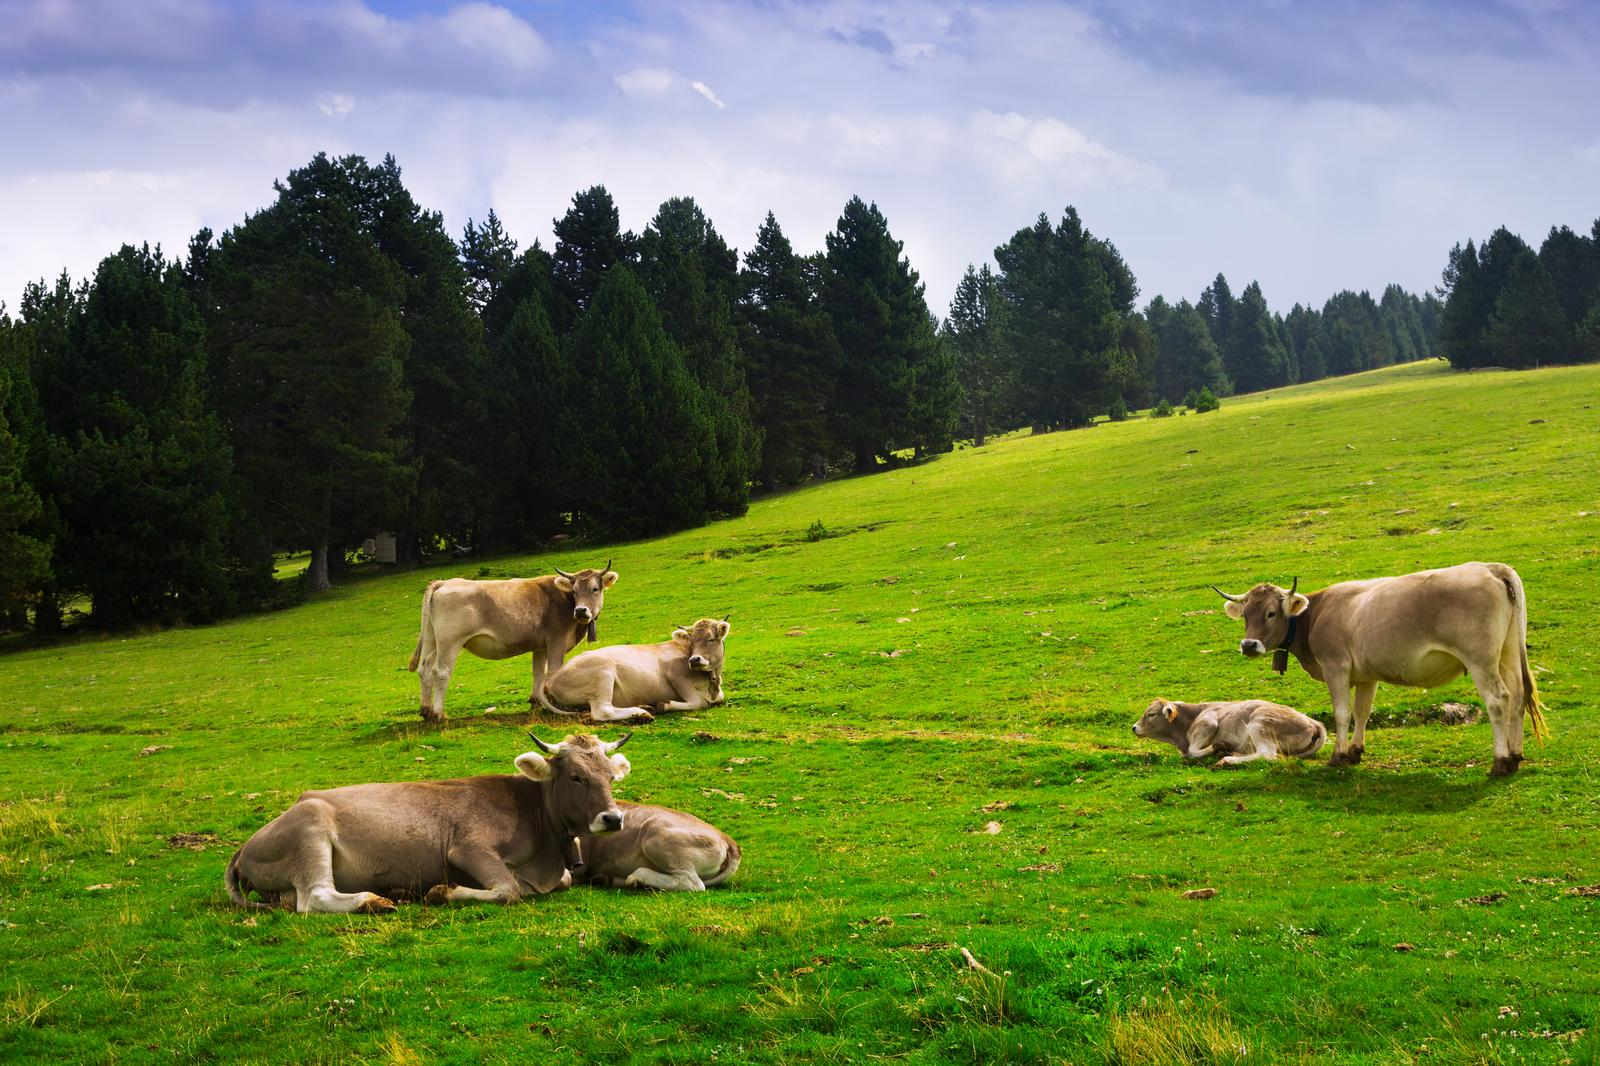 Raising of other cattle and buffaloes in Saare county